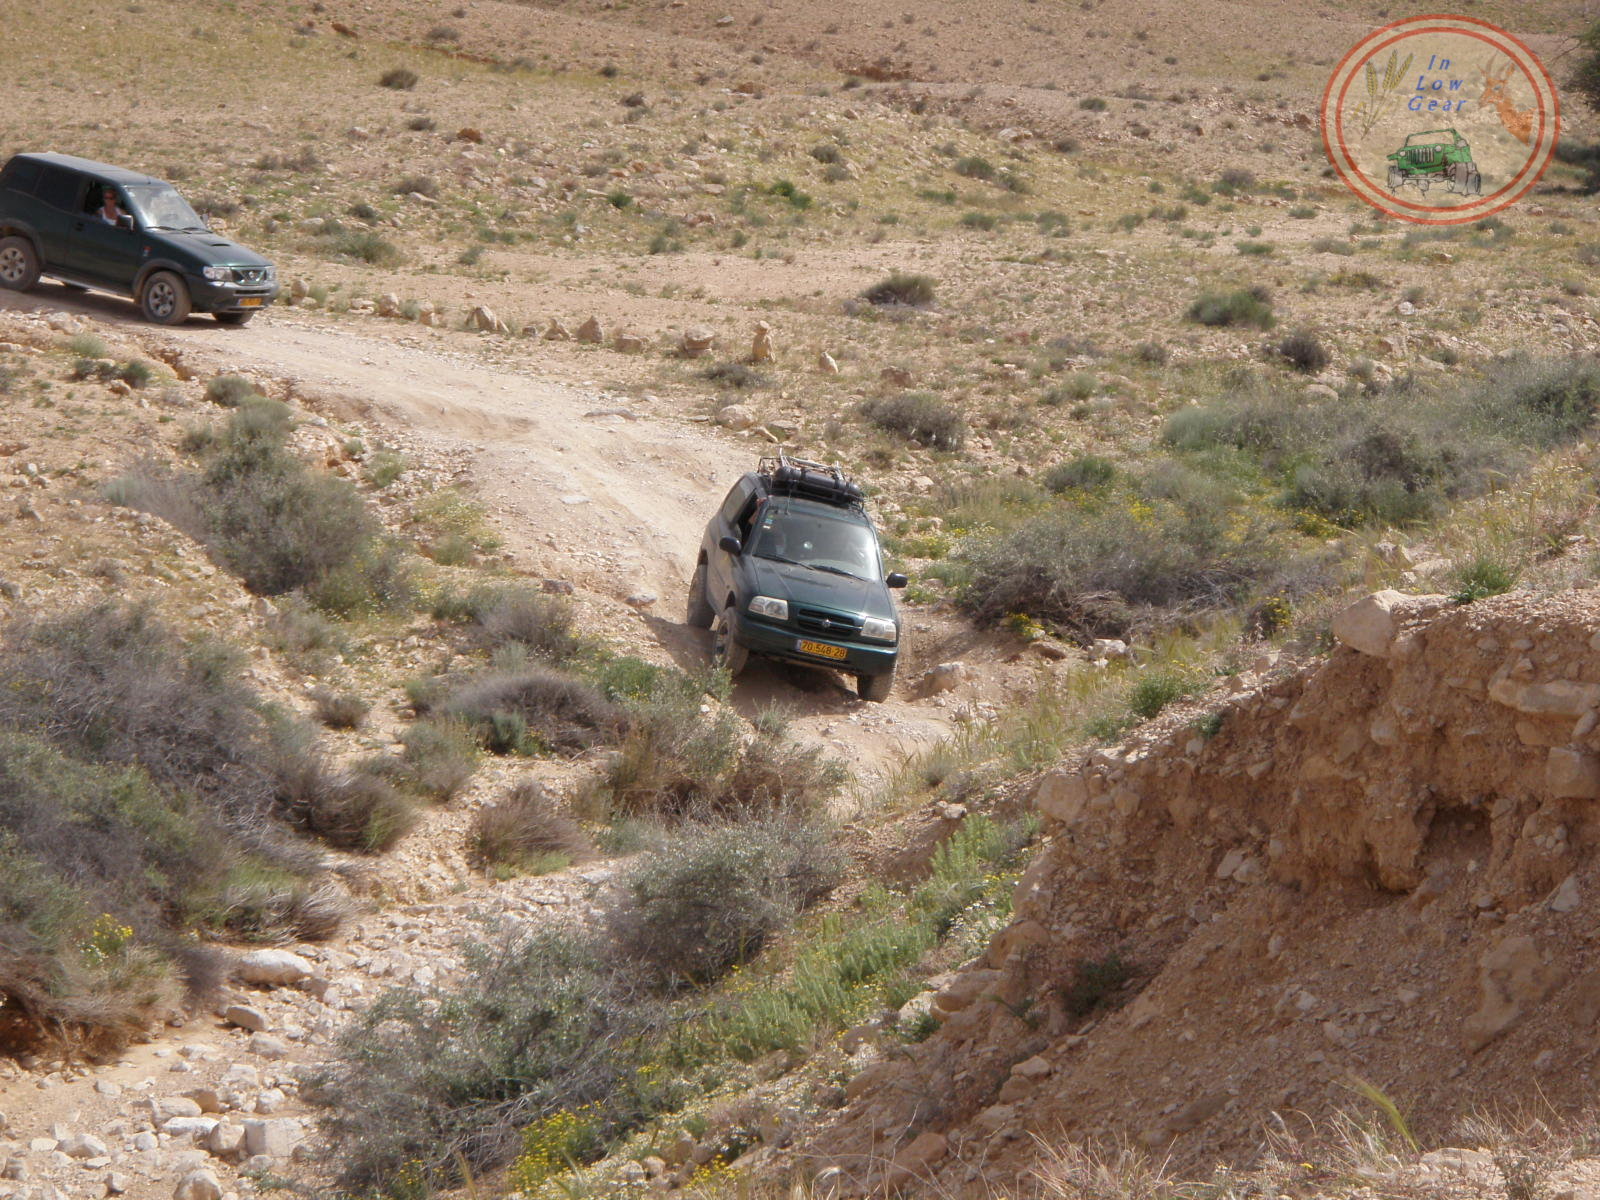 Nahal Lots 4x4 jeep tours